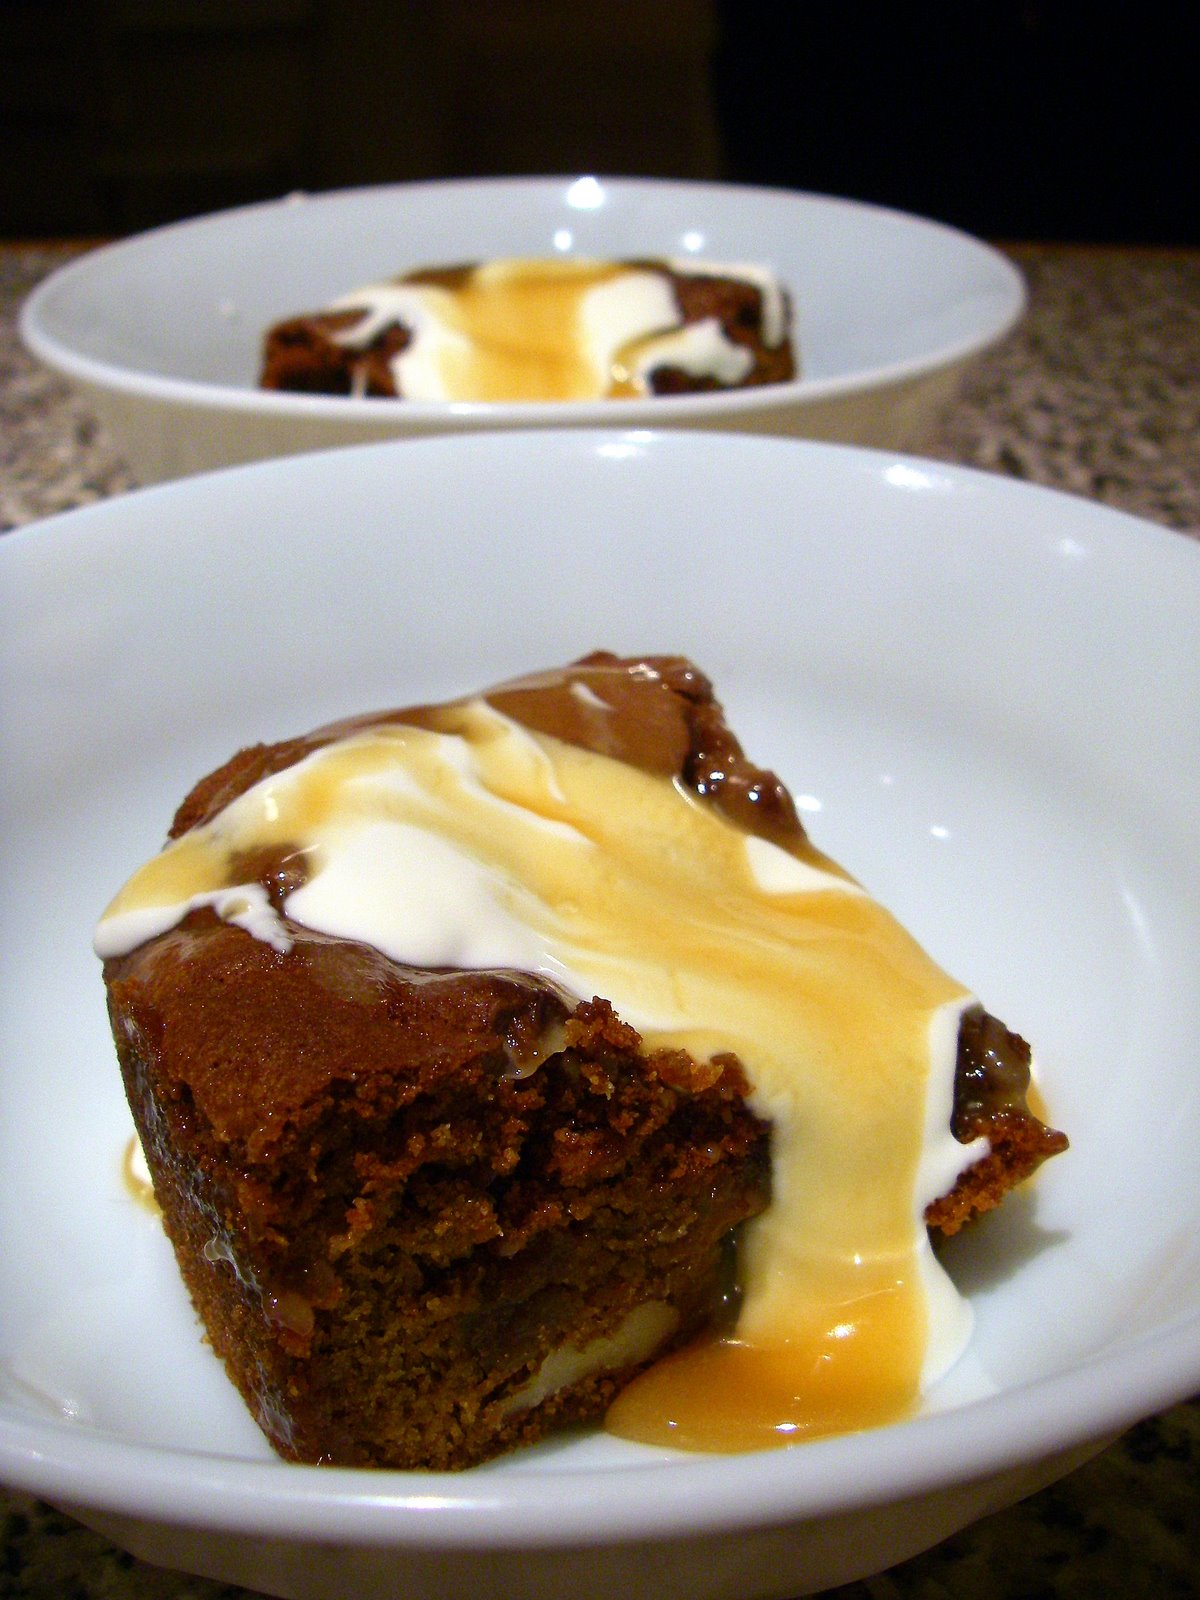 Toffee Sponge Cake Recipe